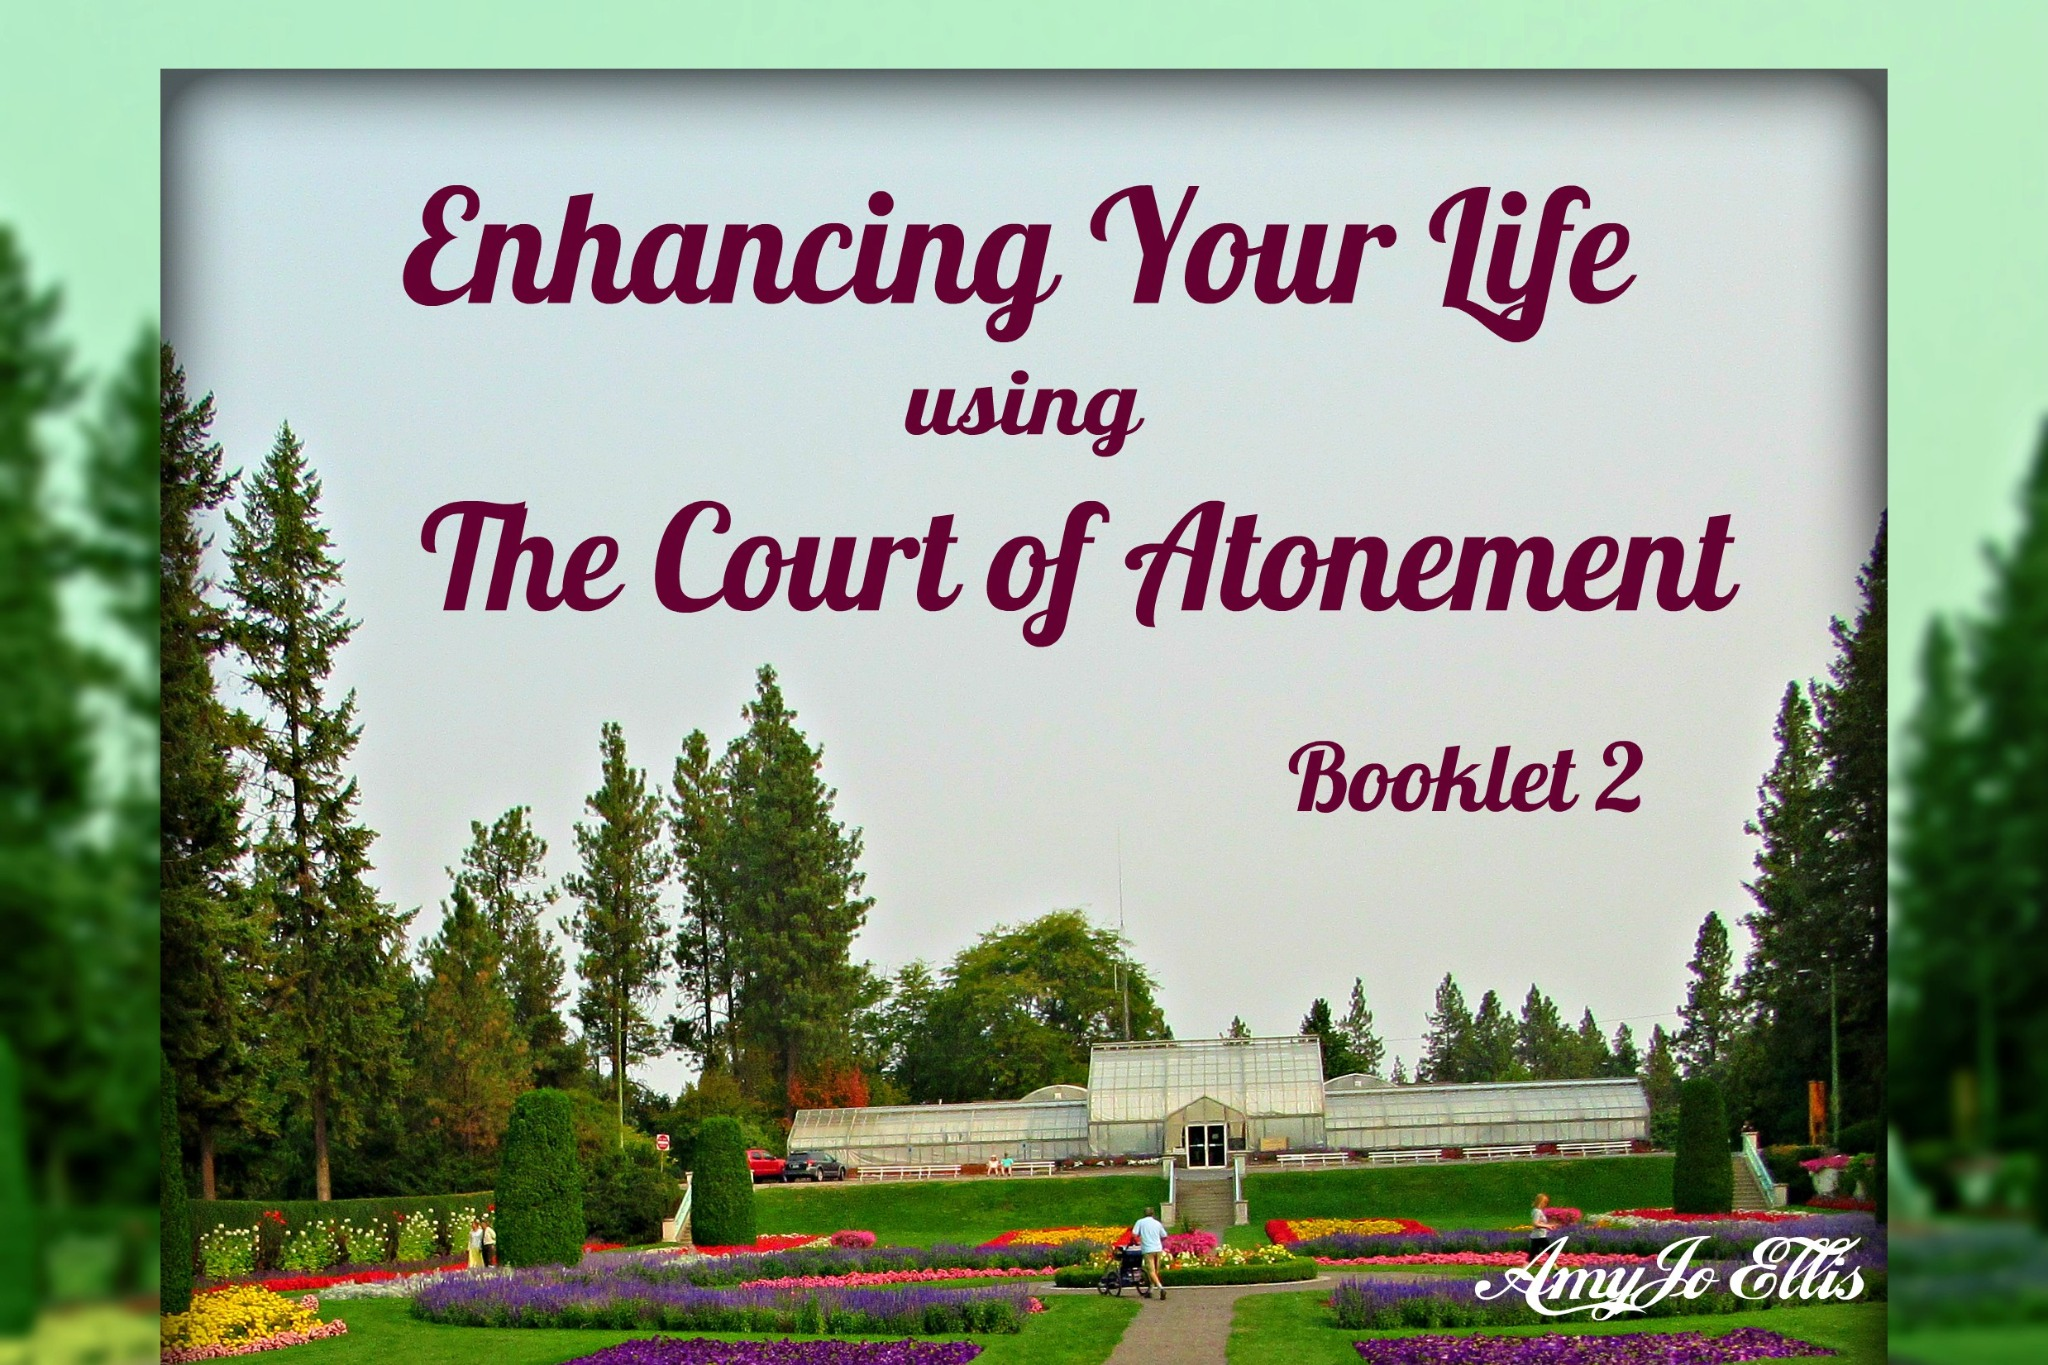 Enhancing Your Life using The Court of Atonement                            Booklet 2